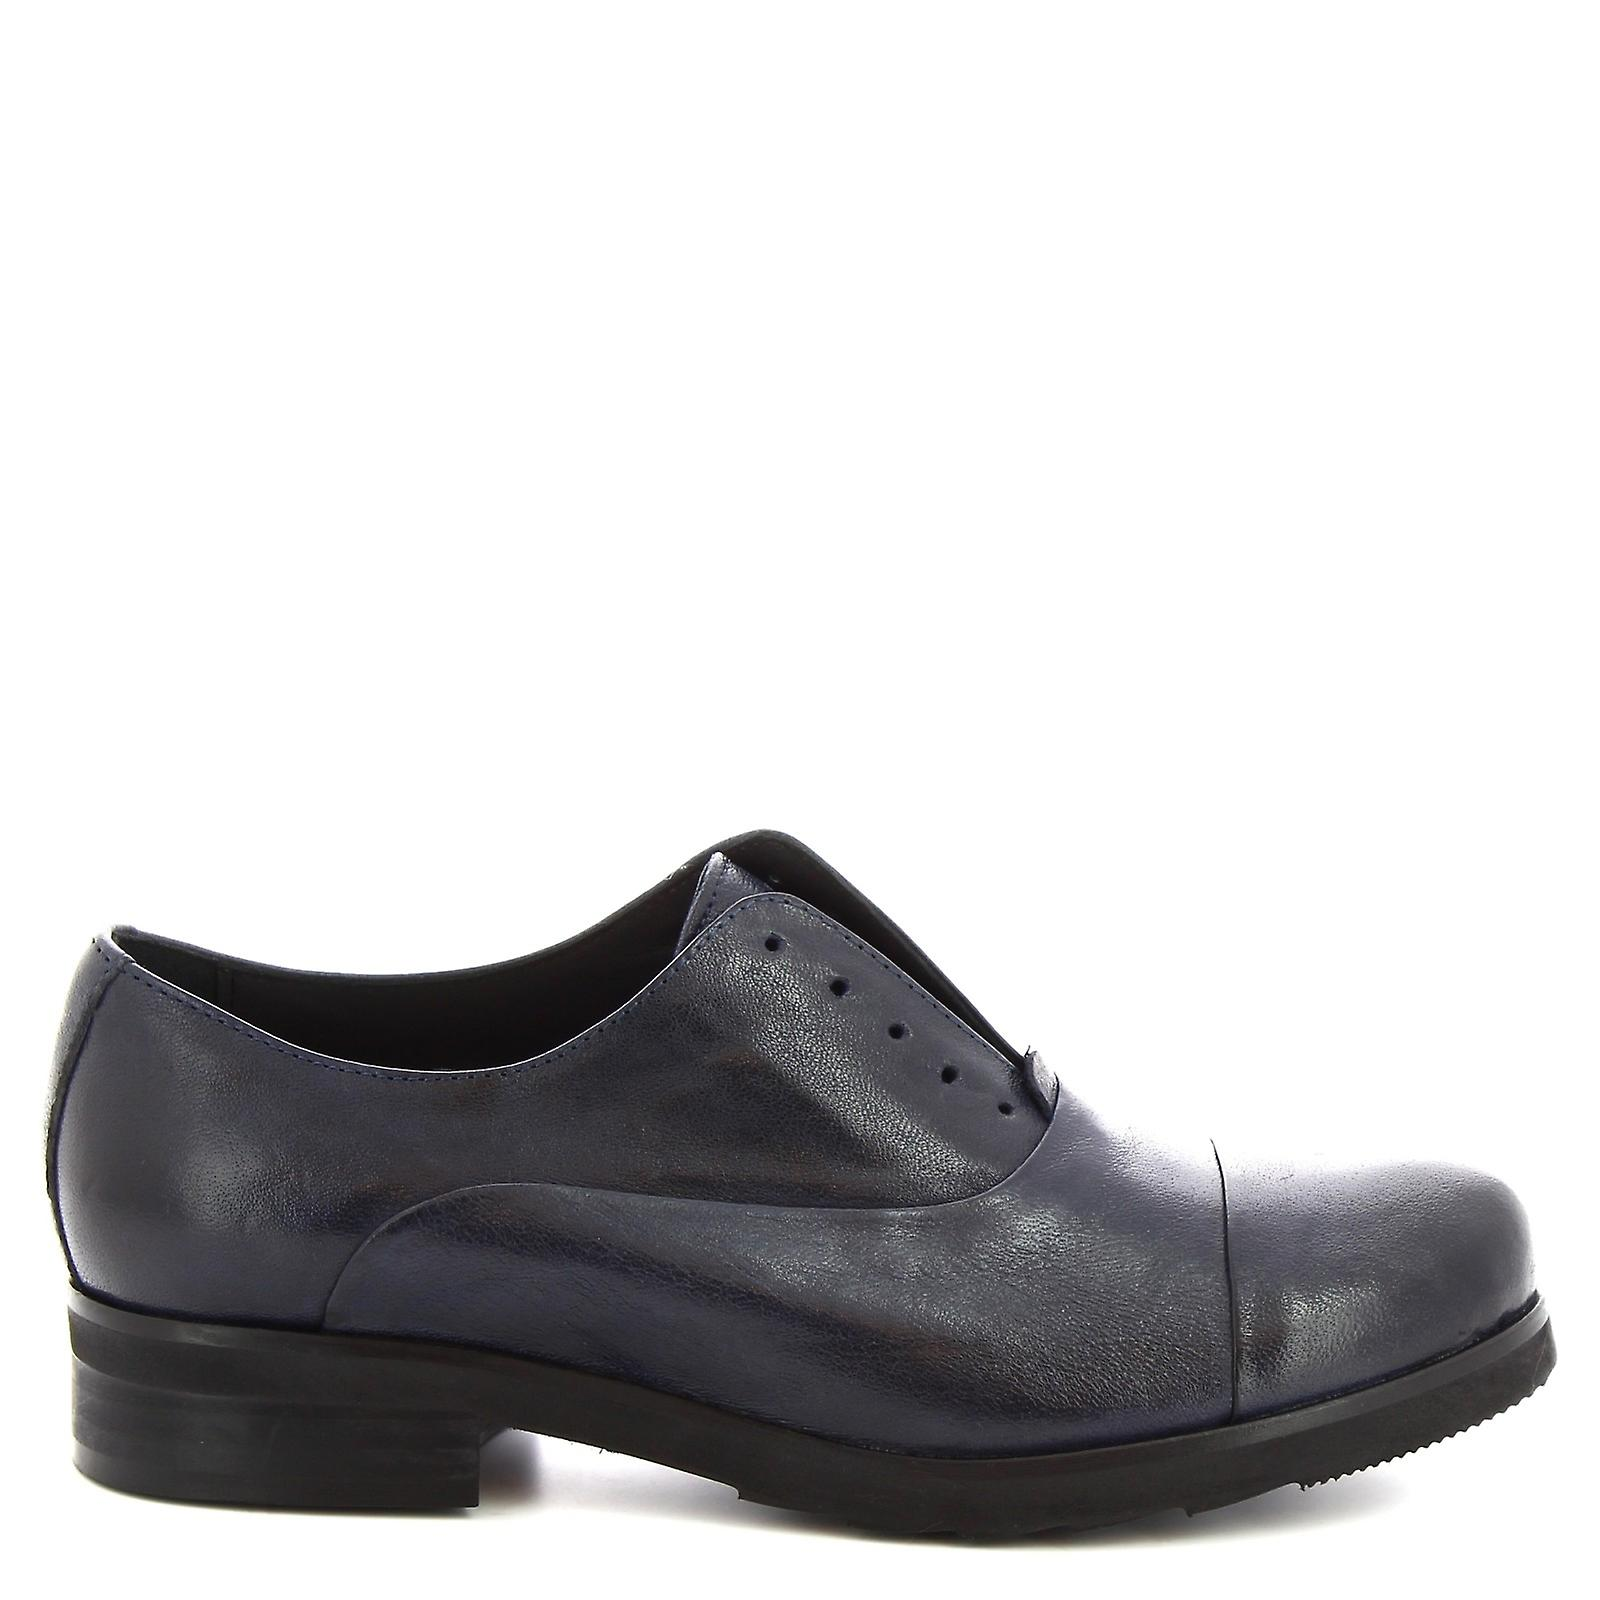 Leonardo Shoes Women's handmade oxford laceless shoes in blue calf leather